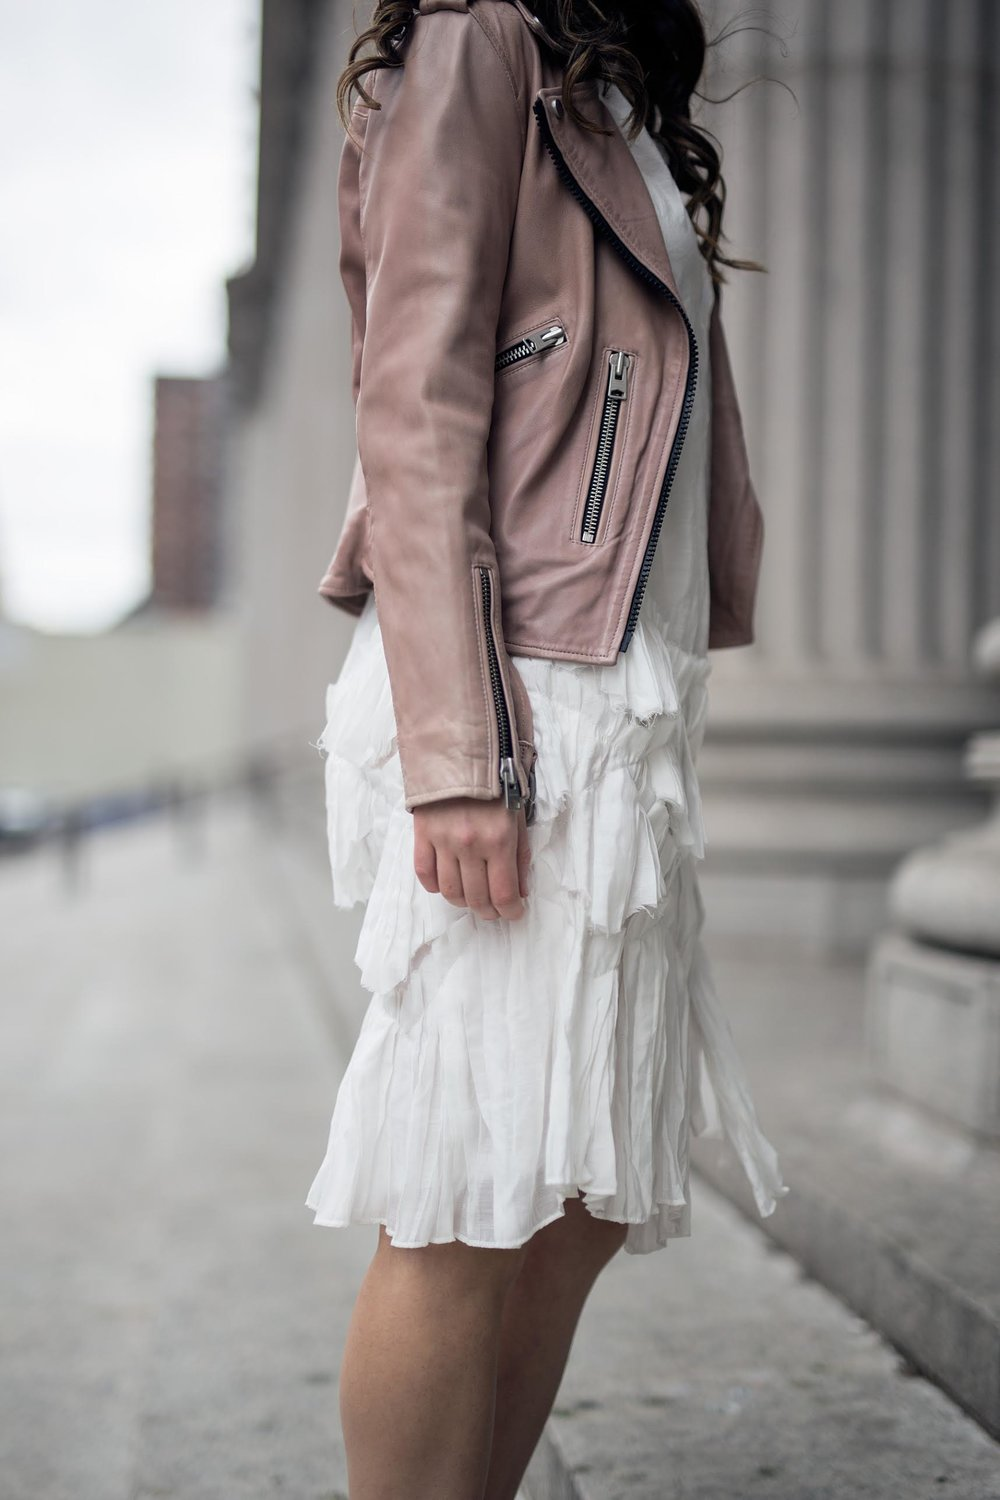 White Ruffle Dress Luvit Louboutins & Love Fashion Blog Esther Santer NYC Street Style Blogger Outfit OOTD Trendy Girly Feminine All Saints Blush Pink Leather Jacket Burgundy Heels Fall Look Inspo Wear Online Shopping Girl App Hair Beauty Women Shop.jpg